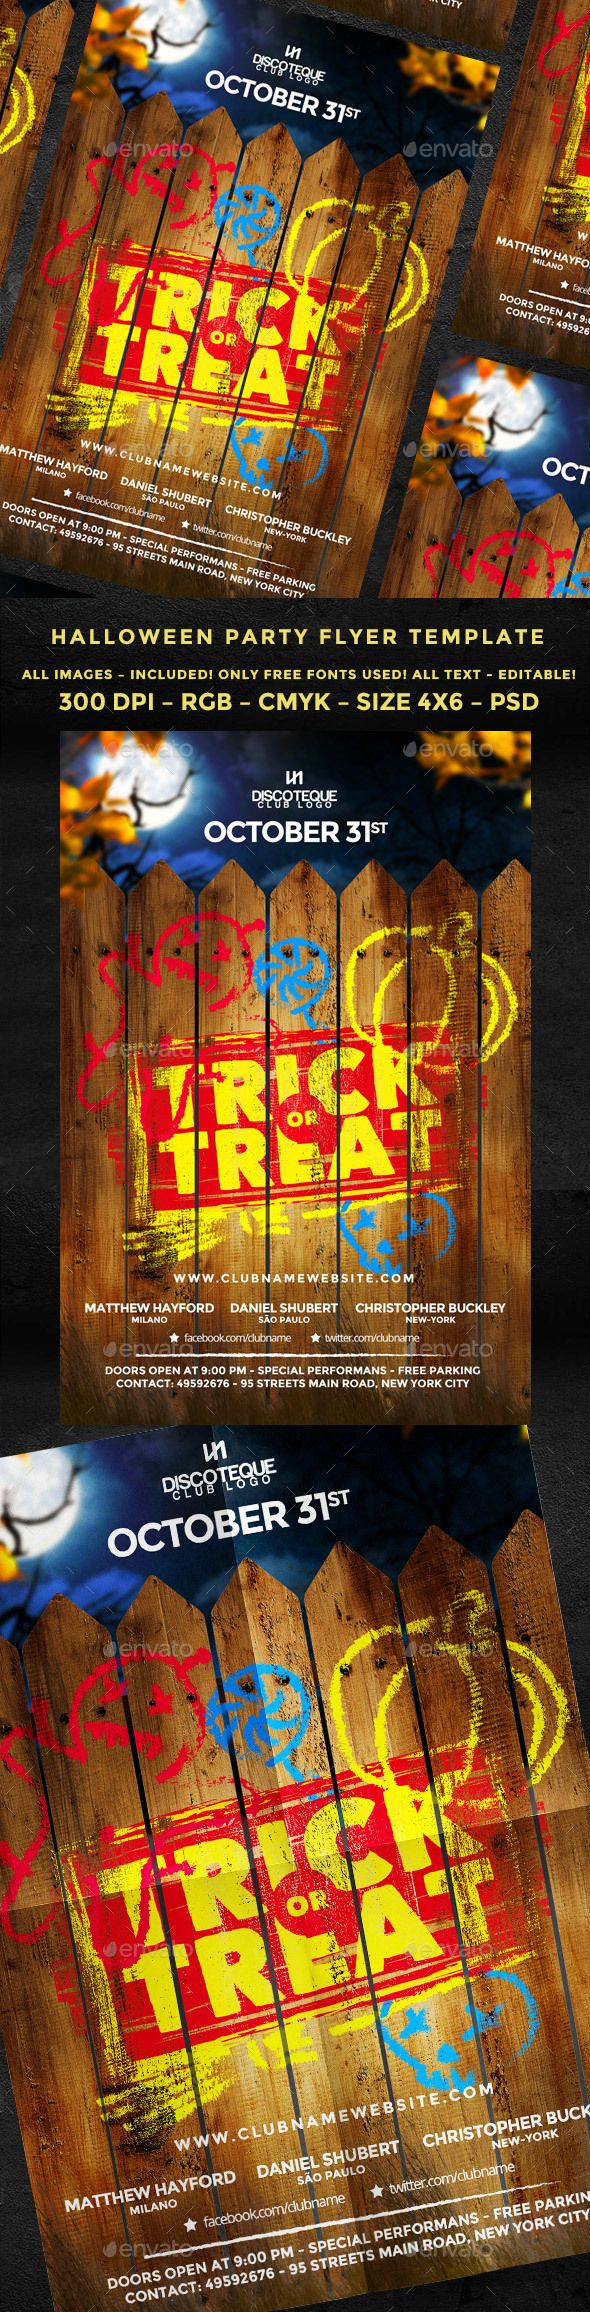 Halloween Flyer Template Free Heartpulsar